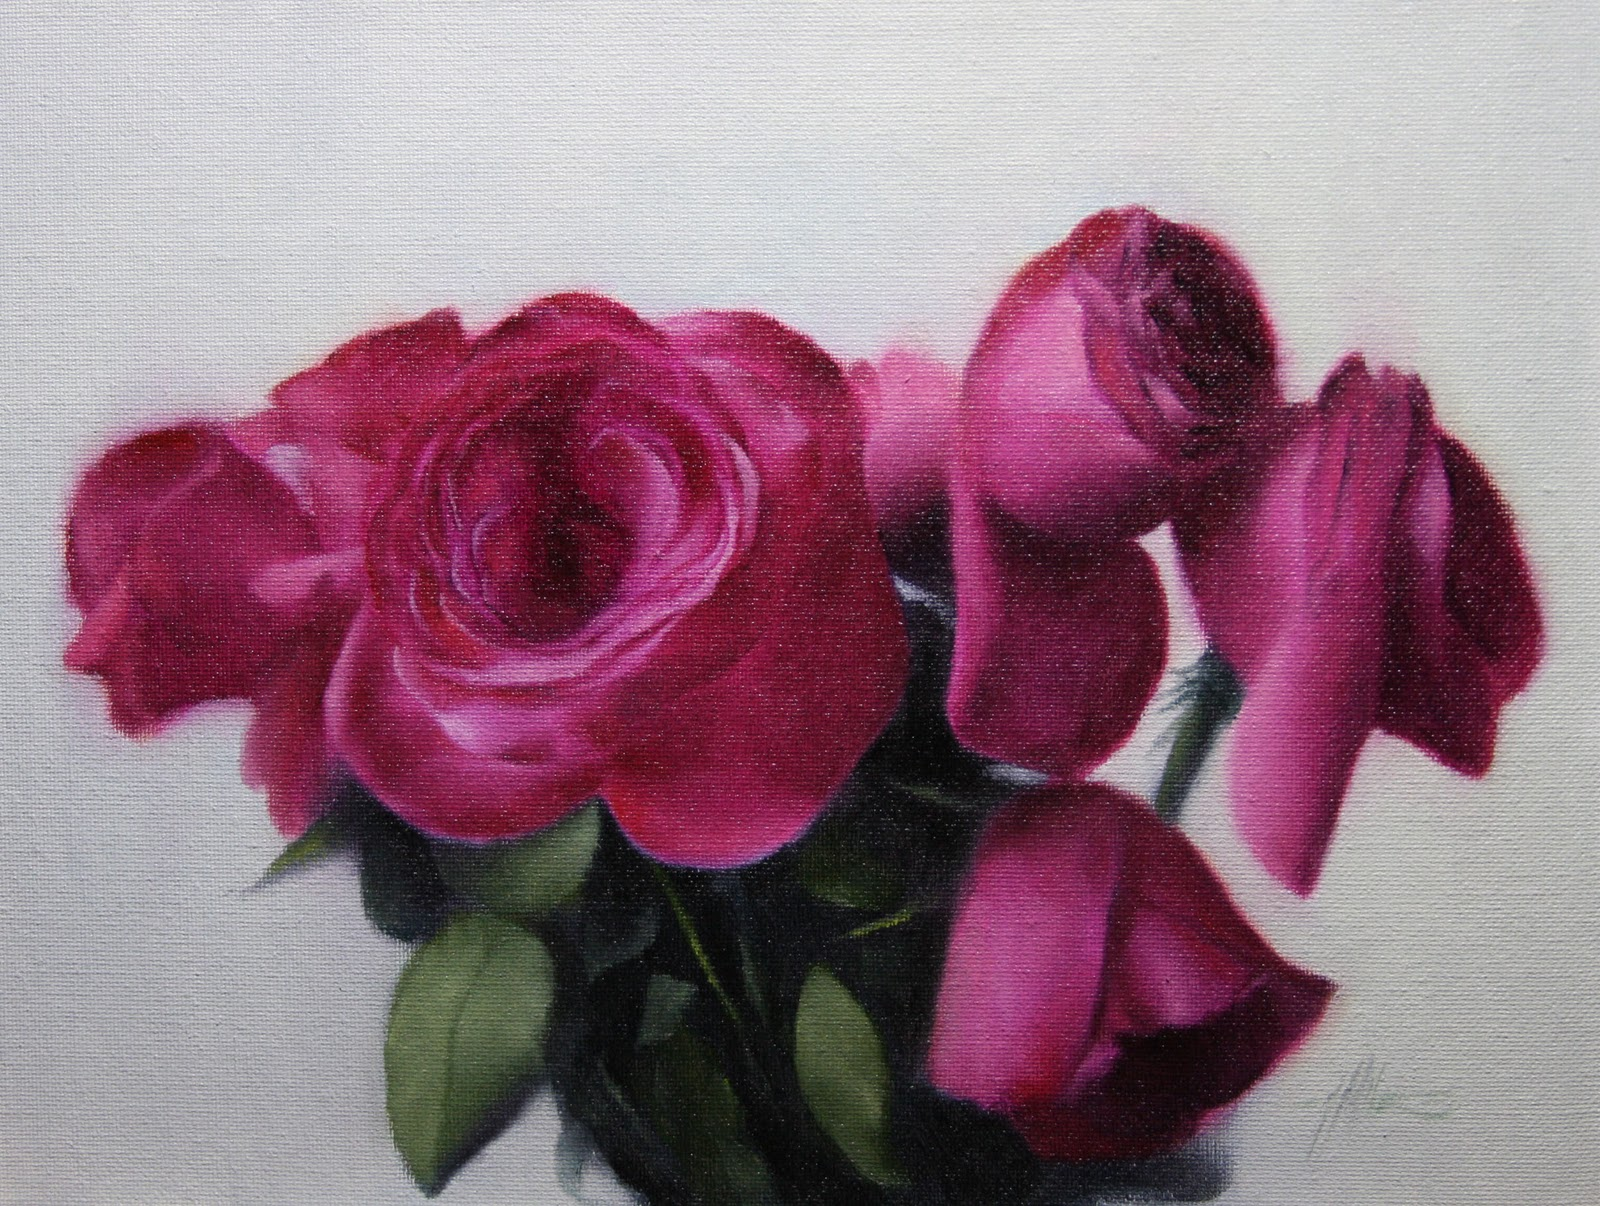 """Pink Roses 2nd lesson of Alla Prima Online Course."" original fine art by Jonathan Aller"